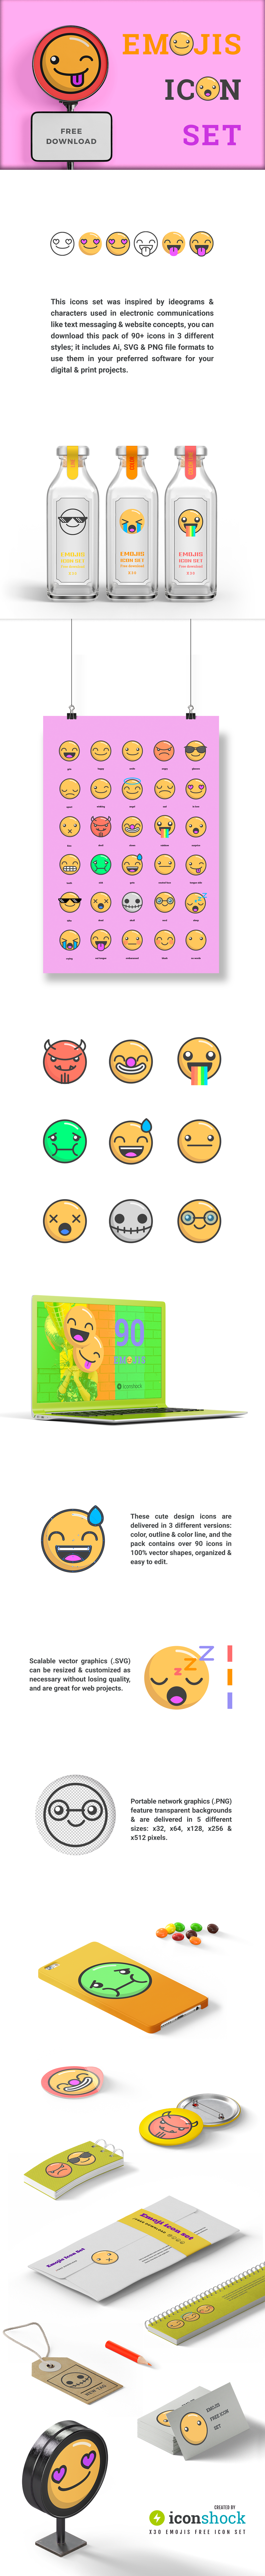 emojis_icon_set